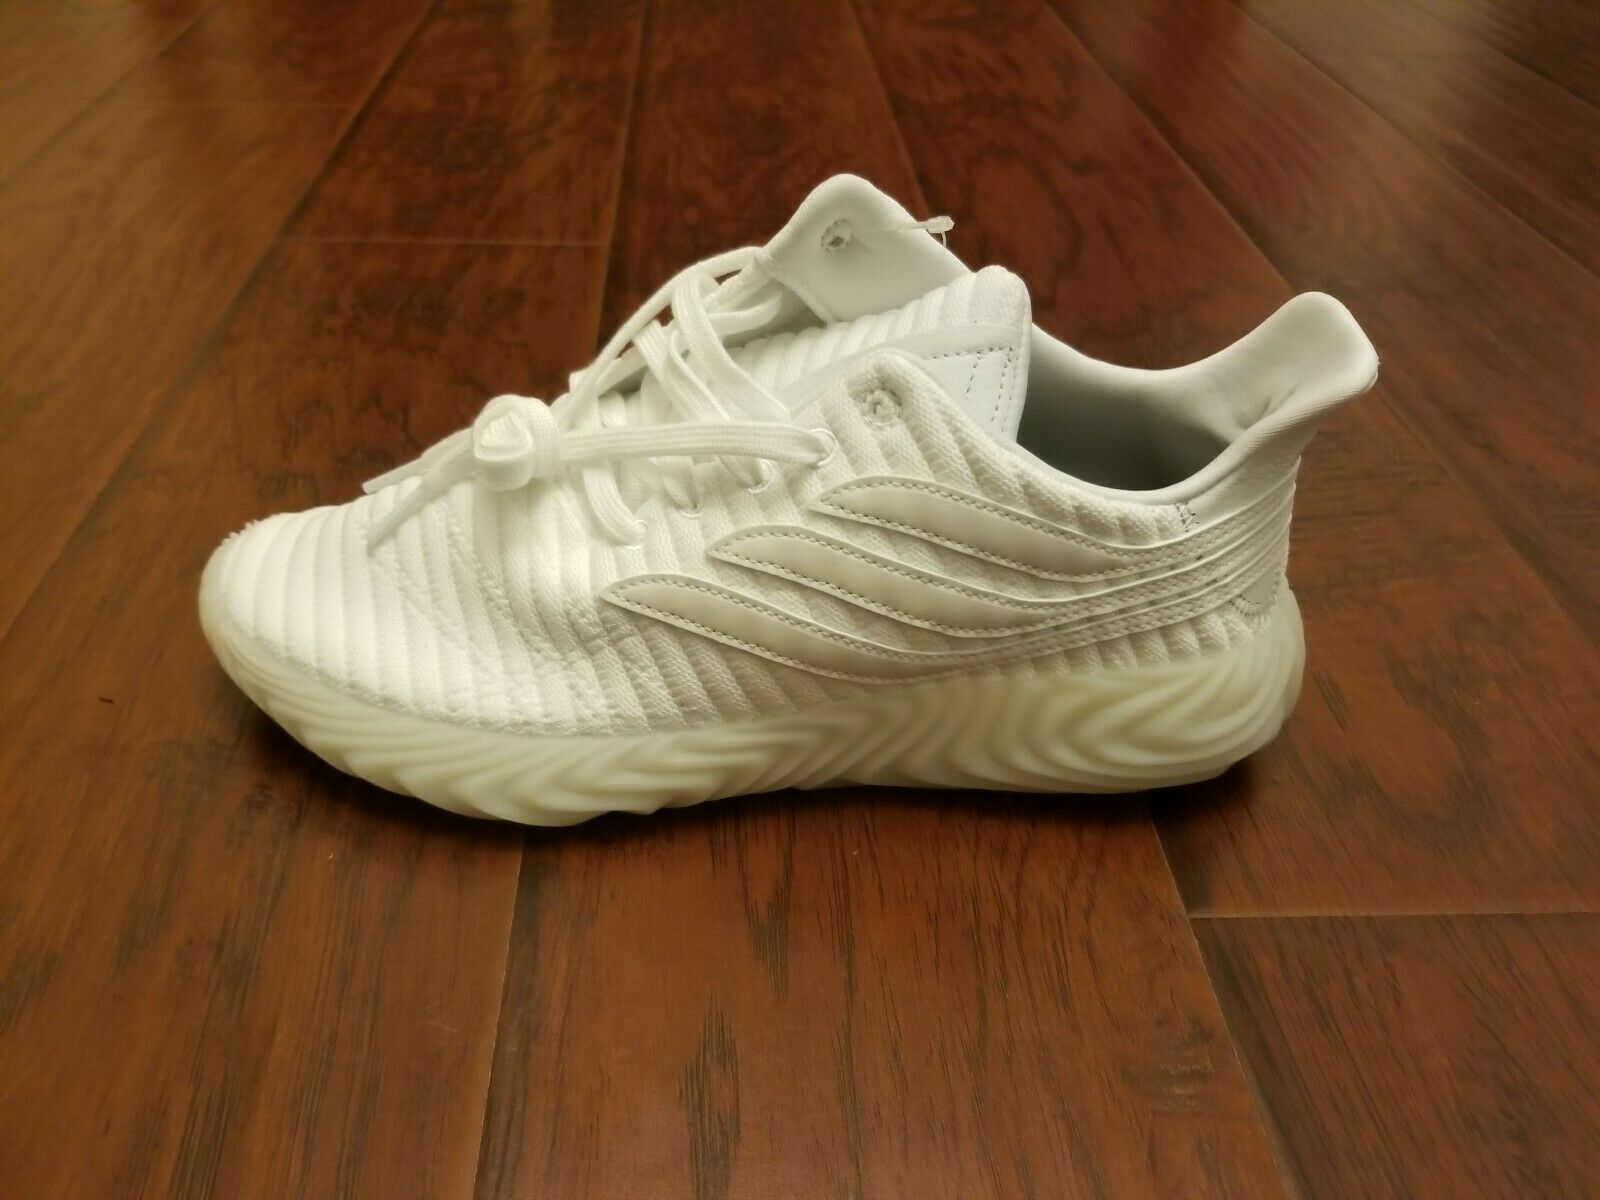 Adidas Sobakov B41955 Cloud White Upper With Crystal White- Deadstock Size 9